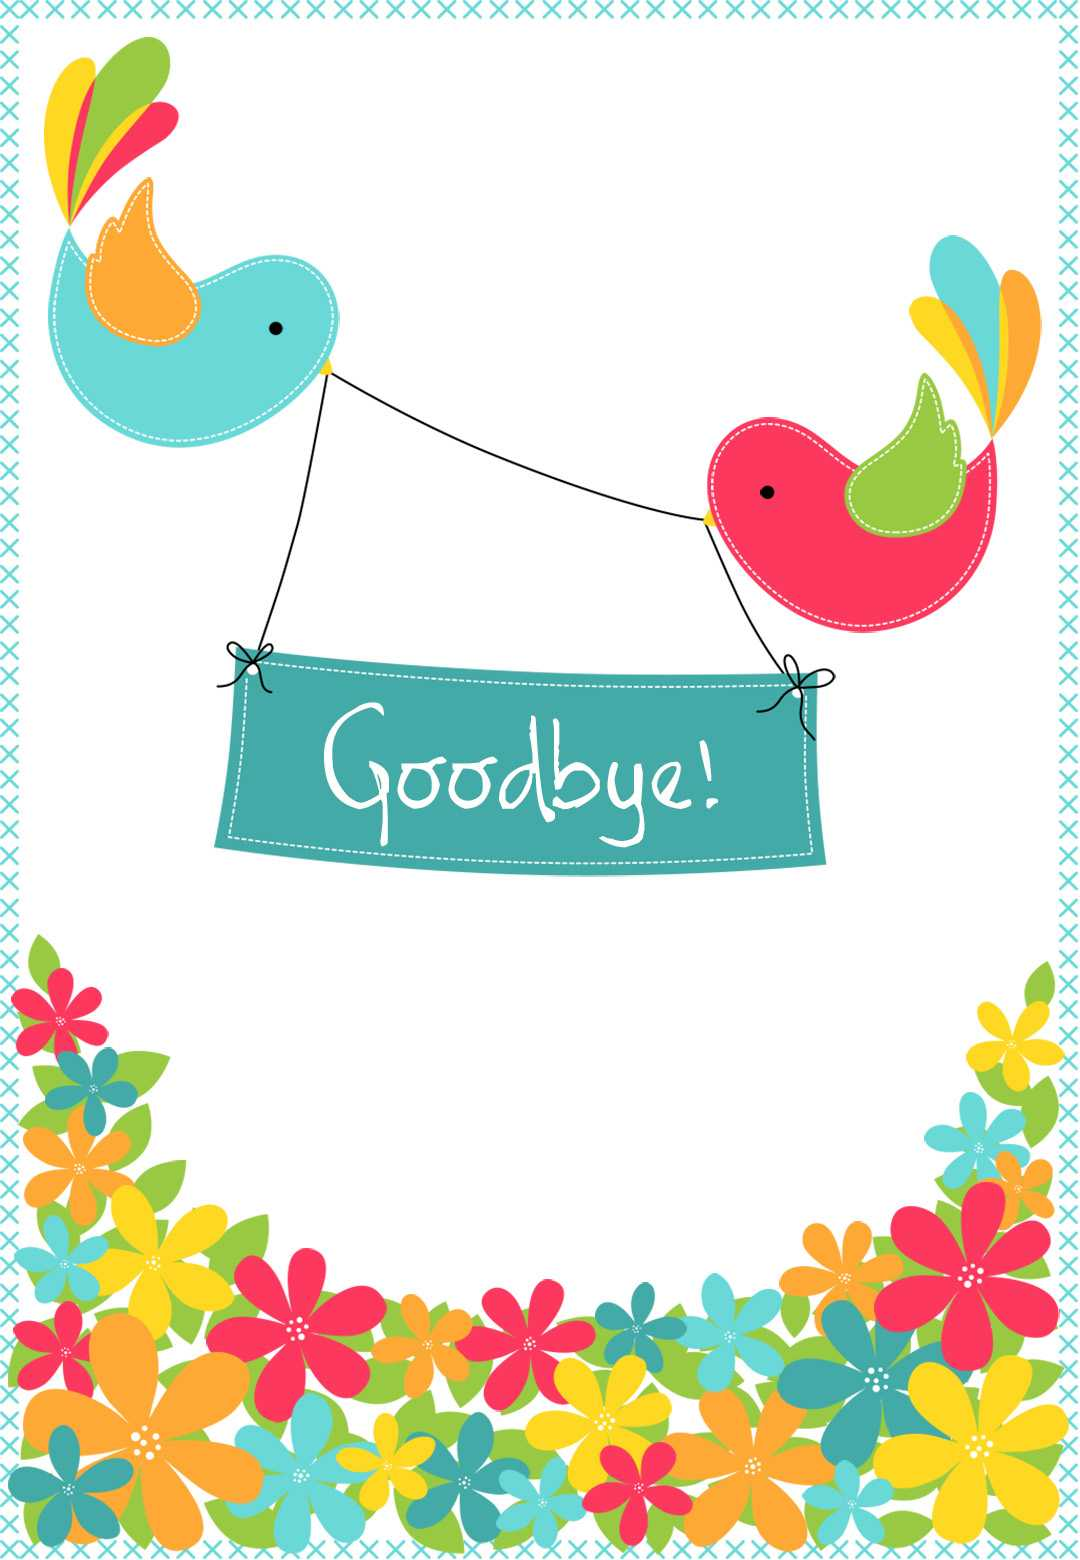 Free Goodbye Cards - Calep.midnightpig.co Inside Good Luck Card Template